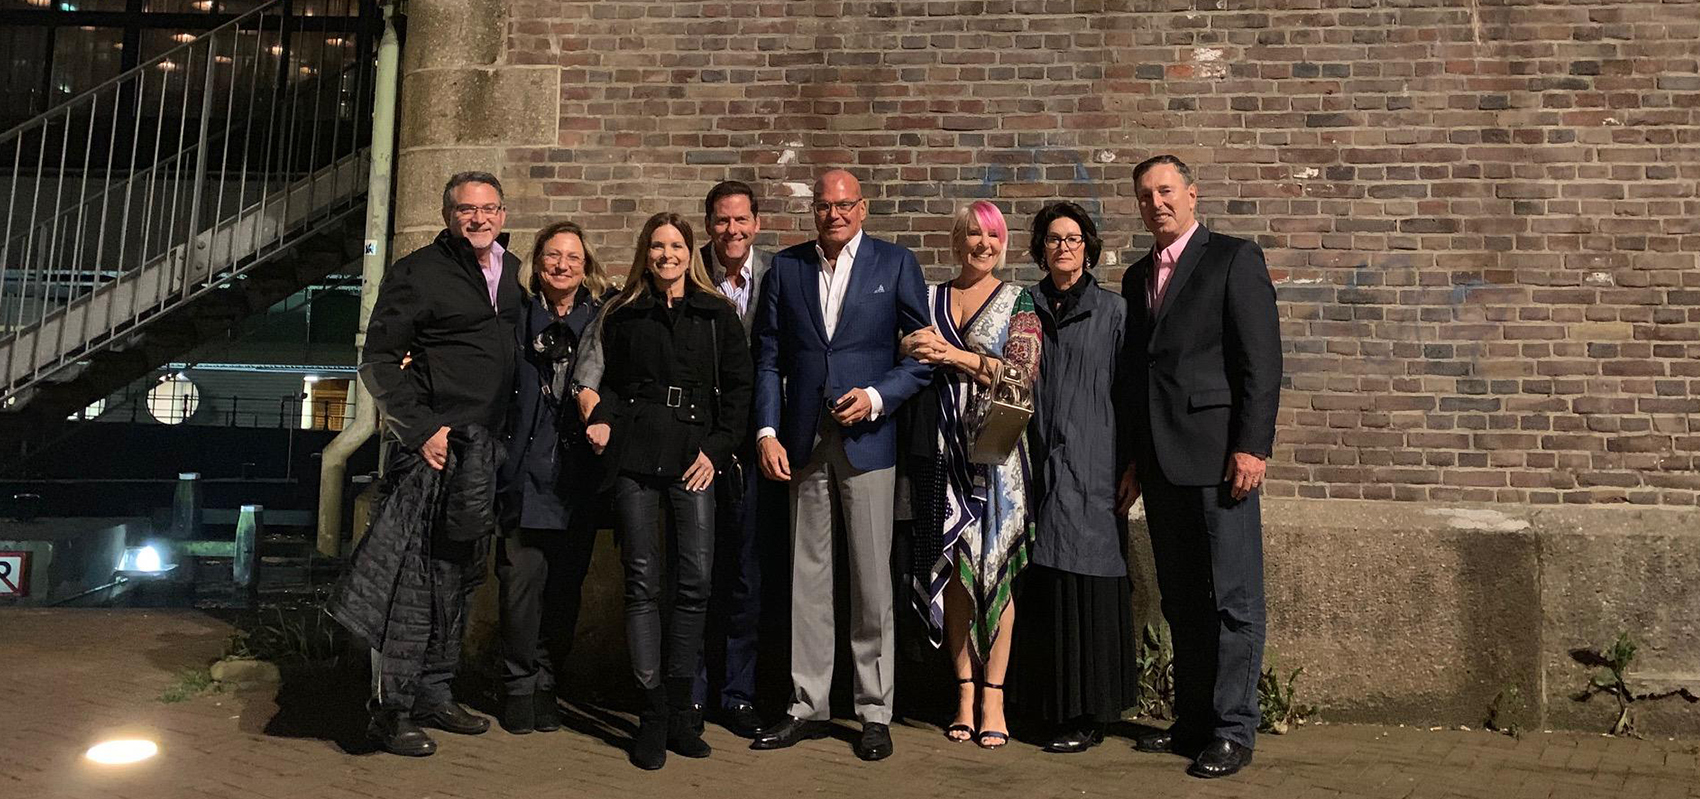 Out & About: 2019 Leaders Conference in Amsterdam